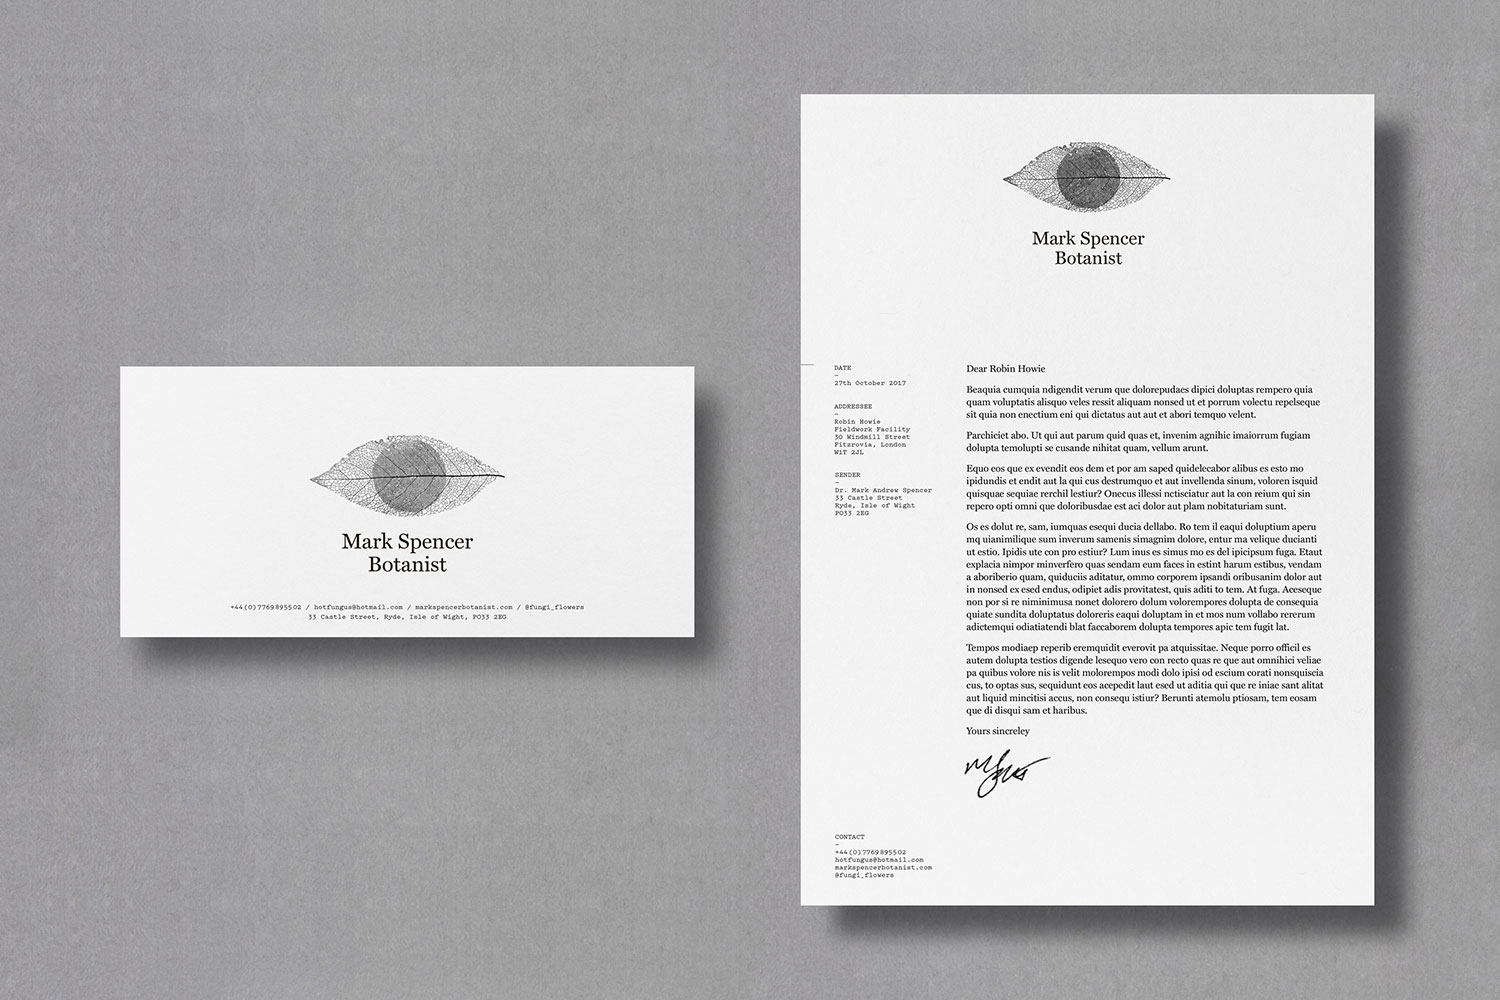 Mark Spencer forensic botanist letterhead